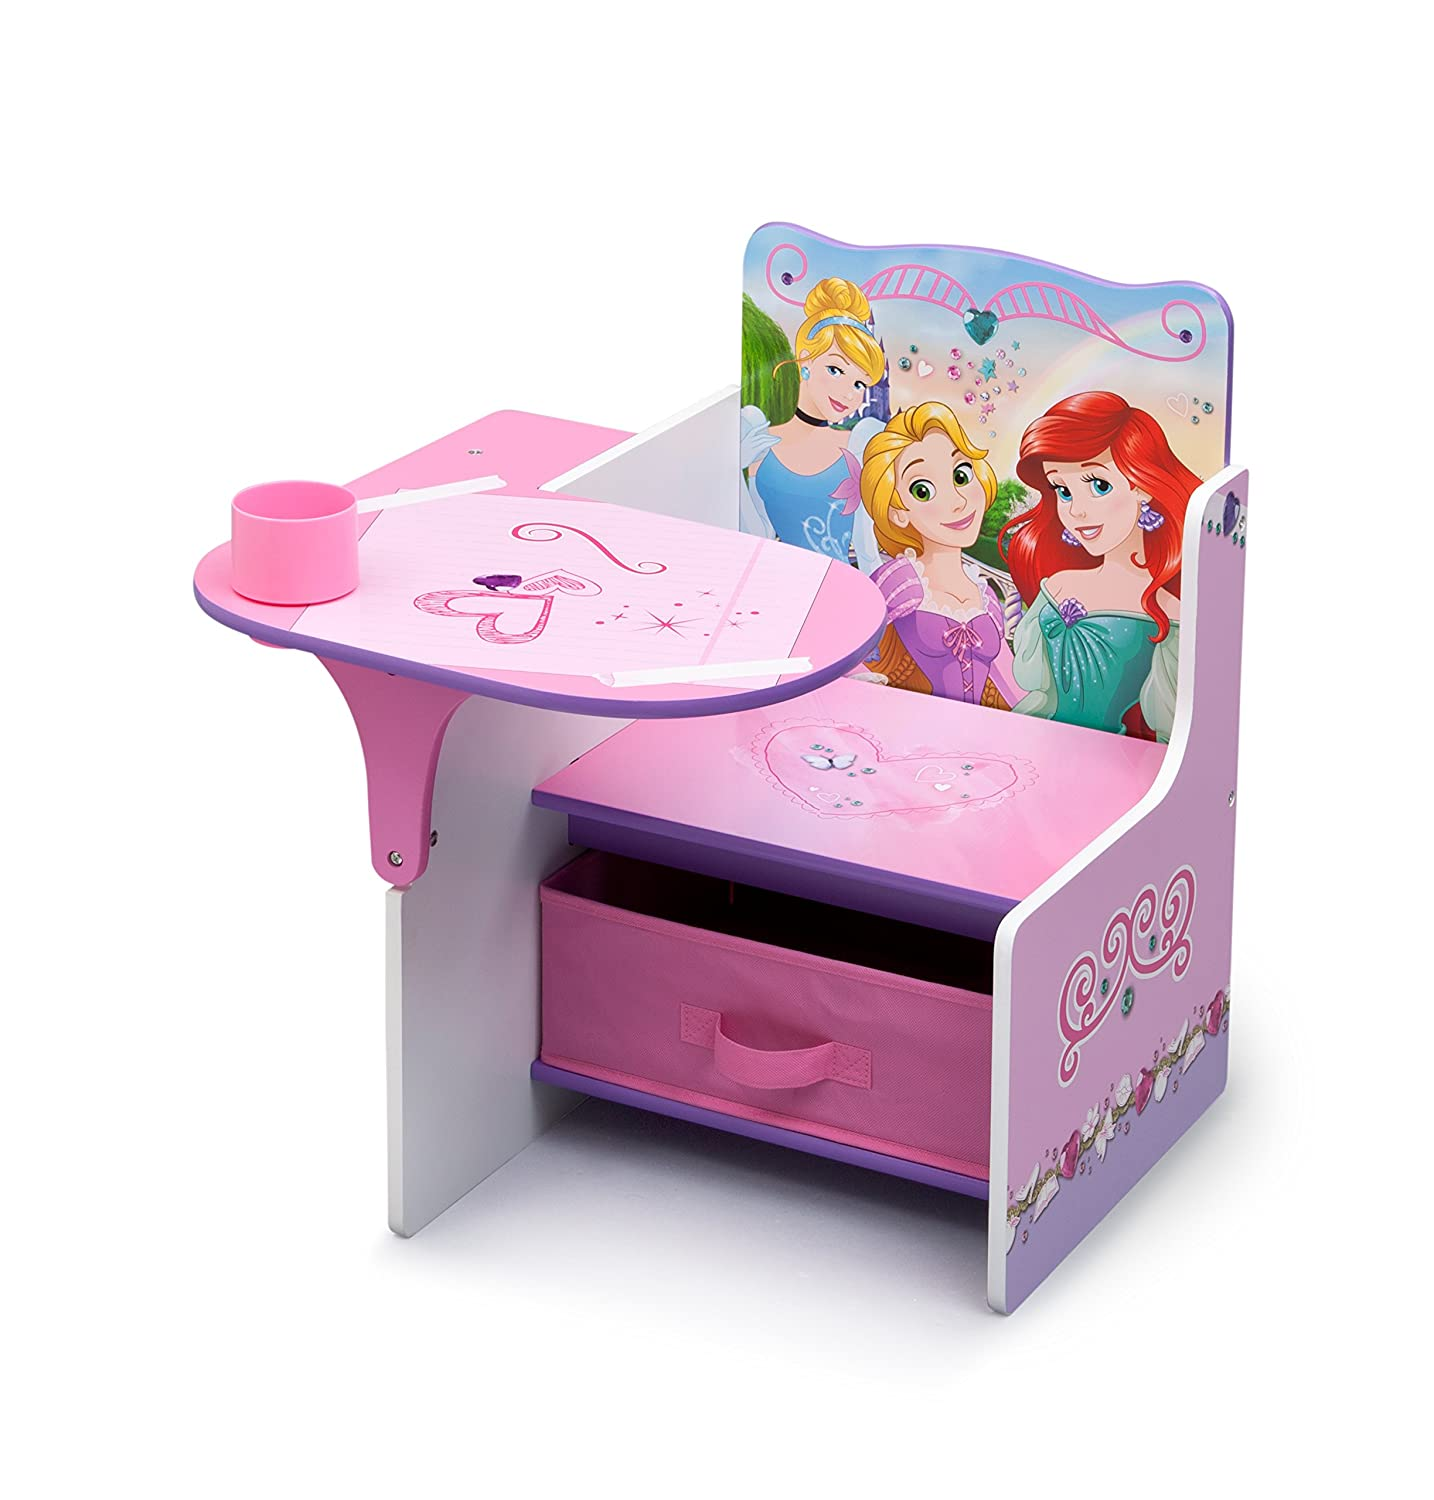 Disney Princess Chair Desk with Storage Bin E Purple Amazon